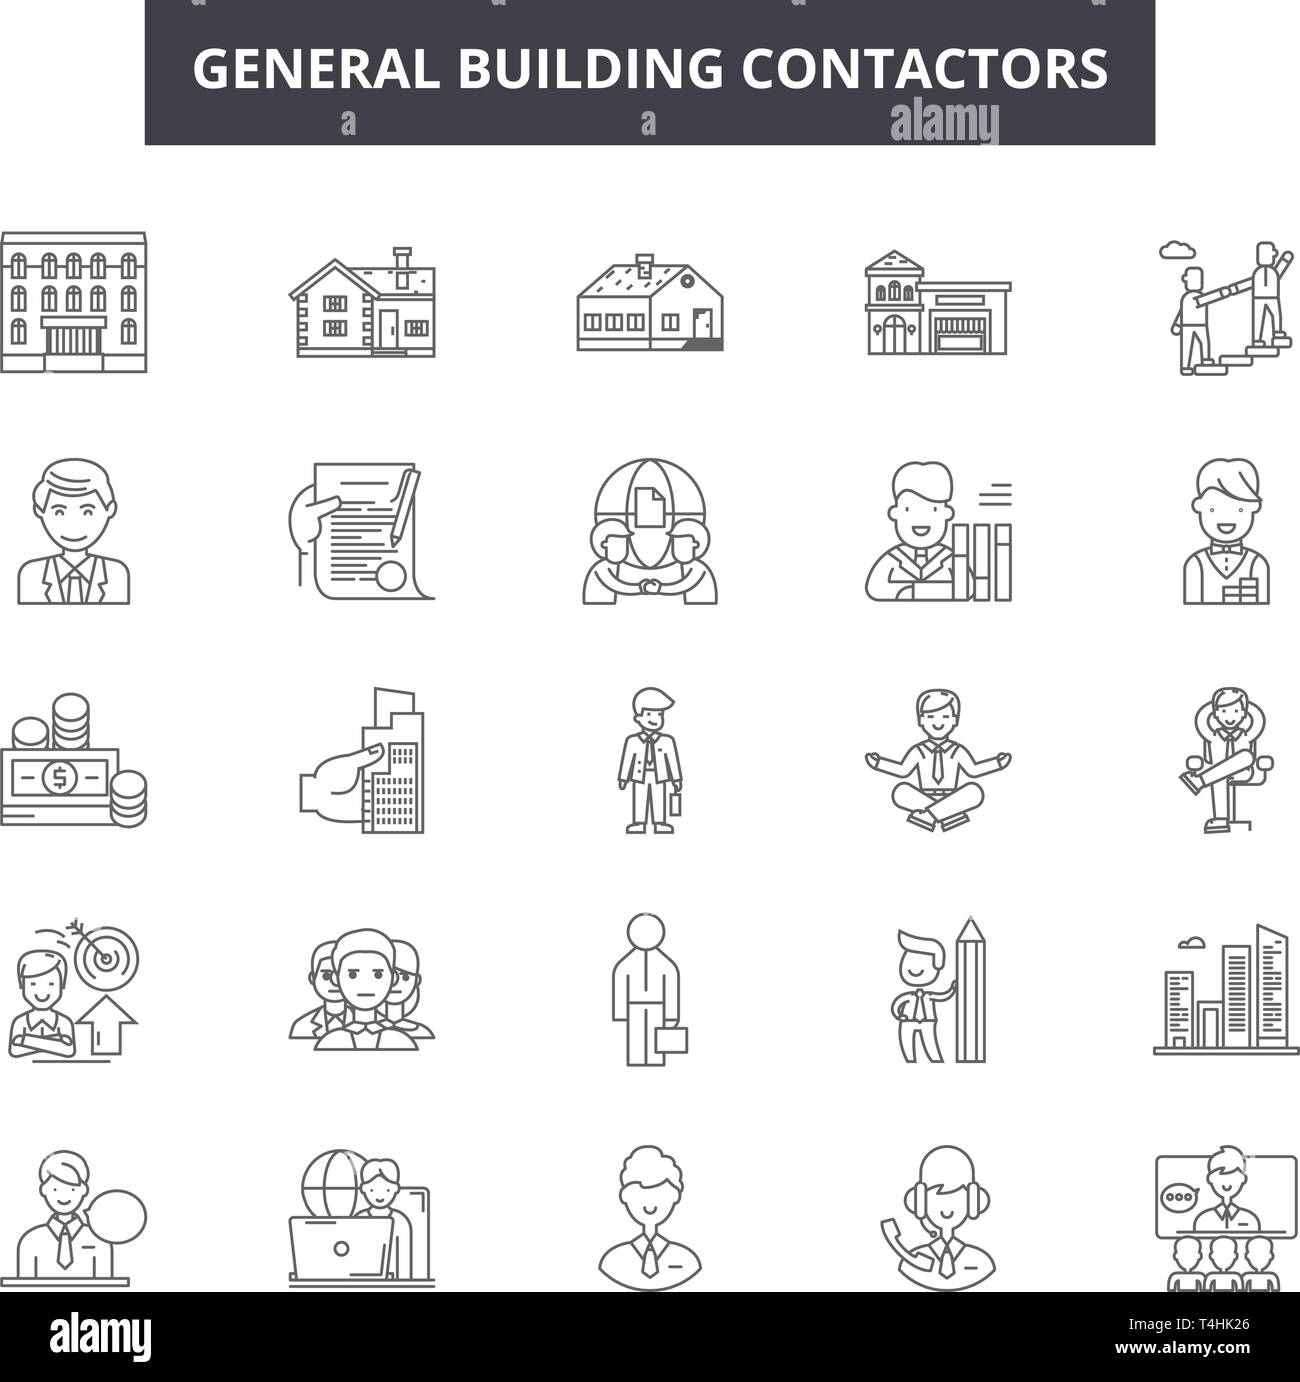 General Building Contractors Line Icons Signs Set Vector General Building Contractors Outline Concept Illustration Building Construction Contracto Stock Vector Image Art Alamy